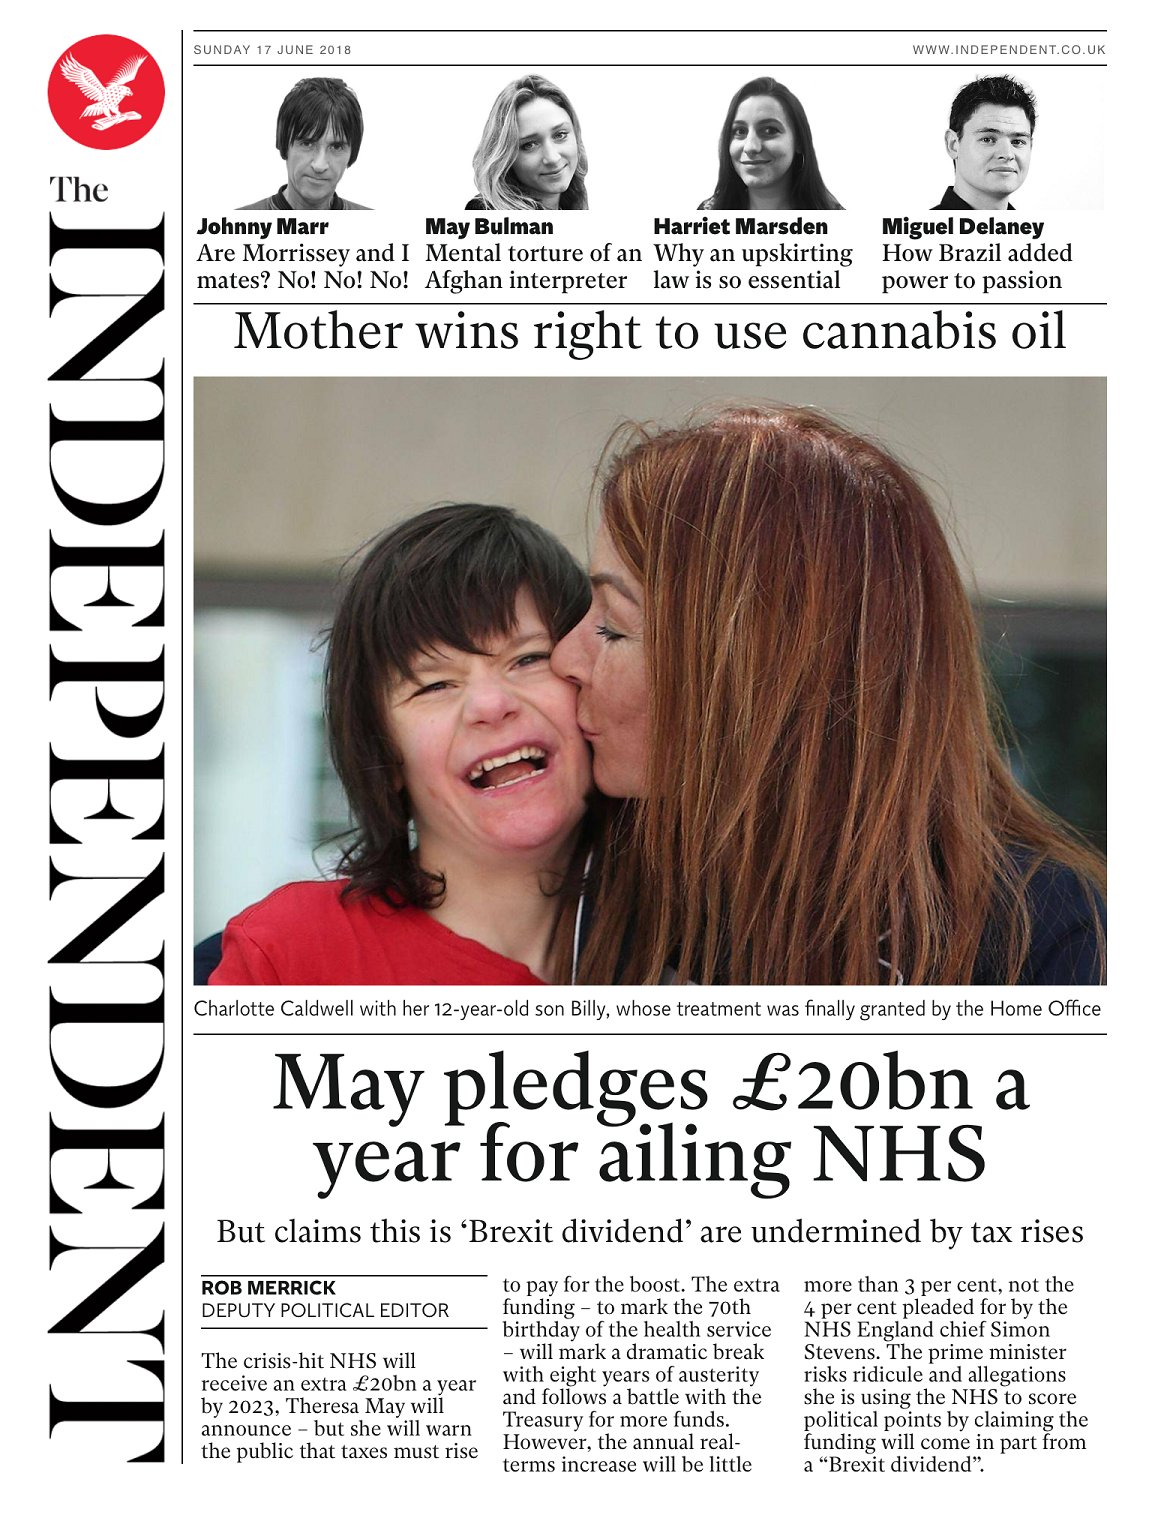 Tomorrow's @independent front page #tomorrowspaperstoday To subscribe to the daily edition: https://t.co/XF8VnDpHYF https://t.co/jCUyp3dITY